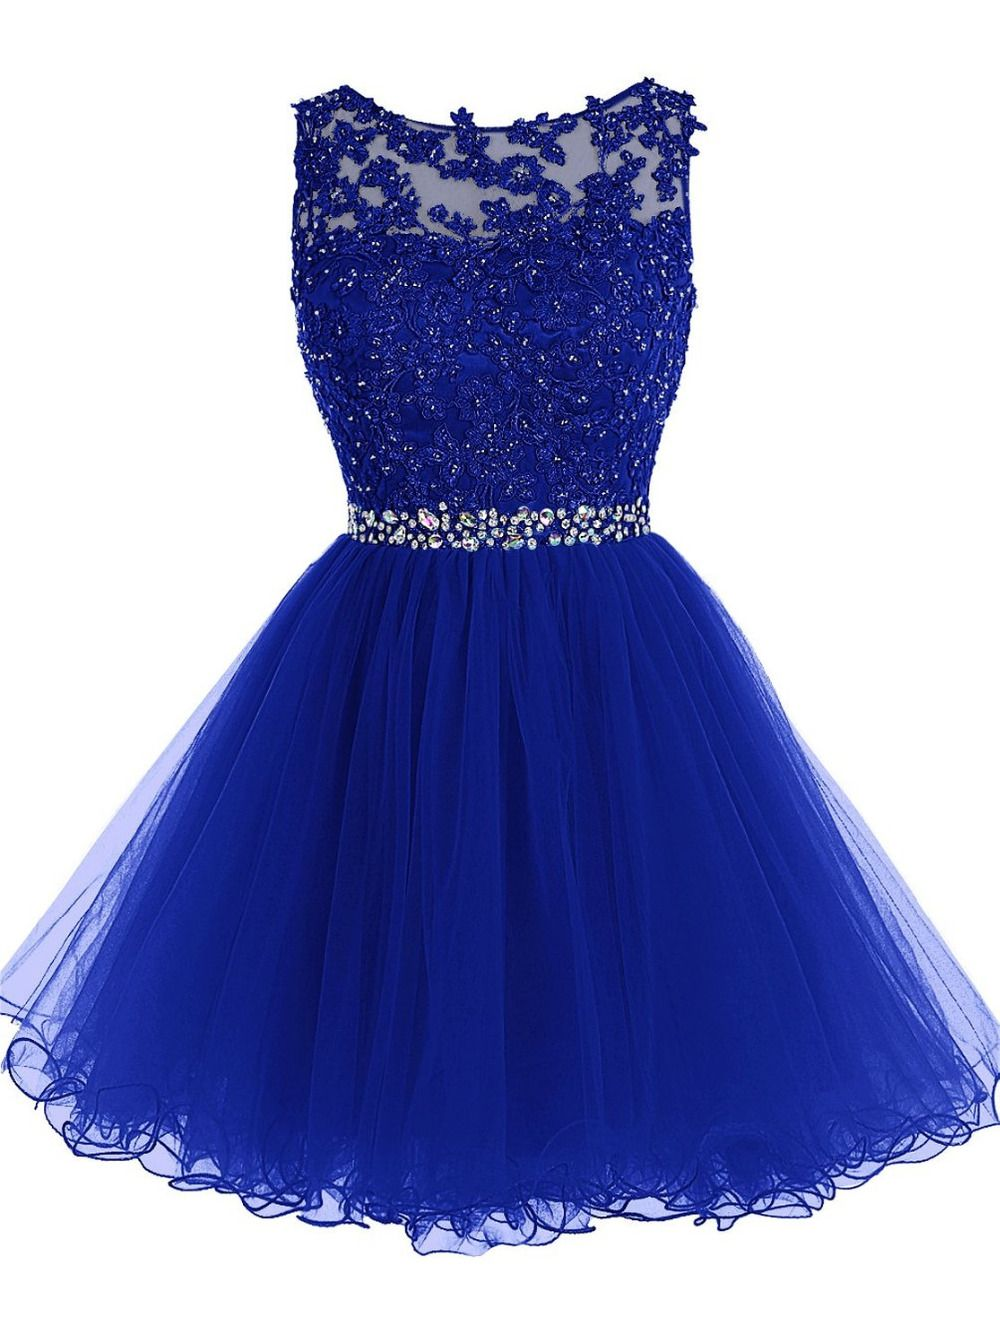 Cheap prom dresses buy quality gray prom dresses directly from